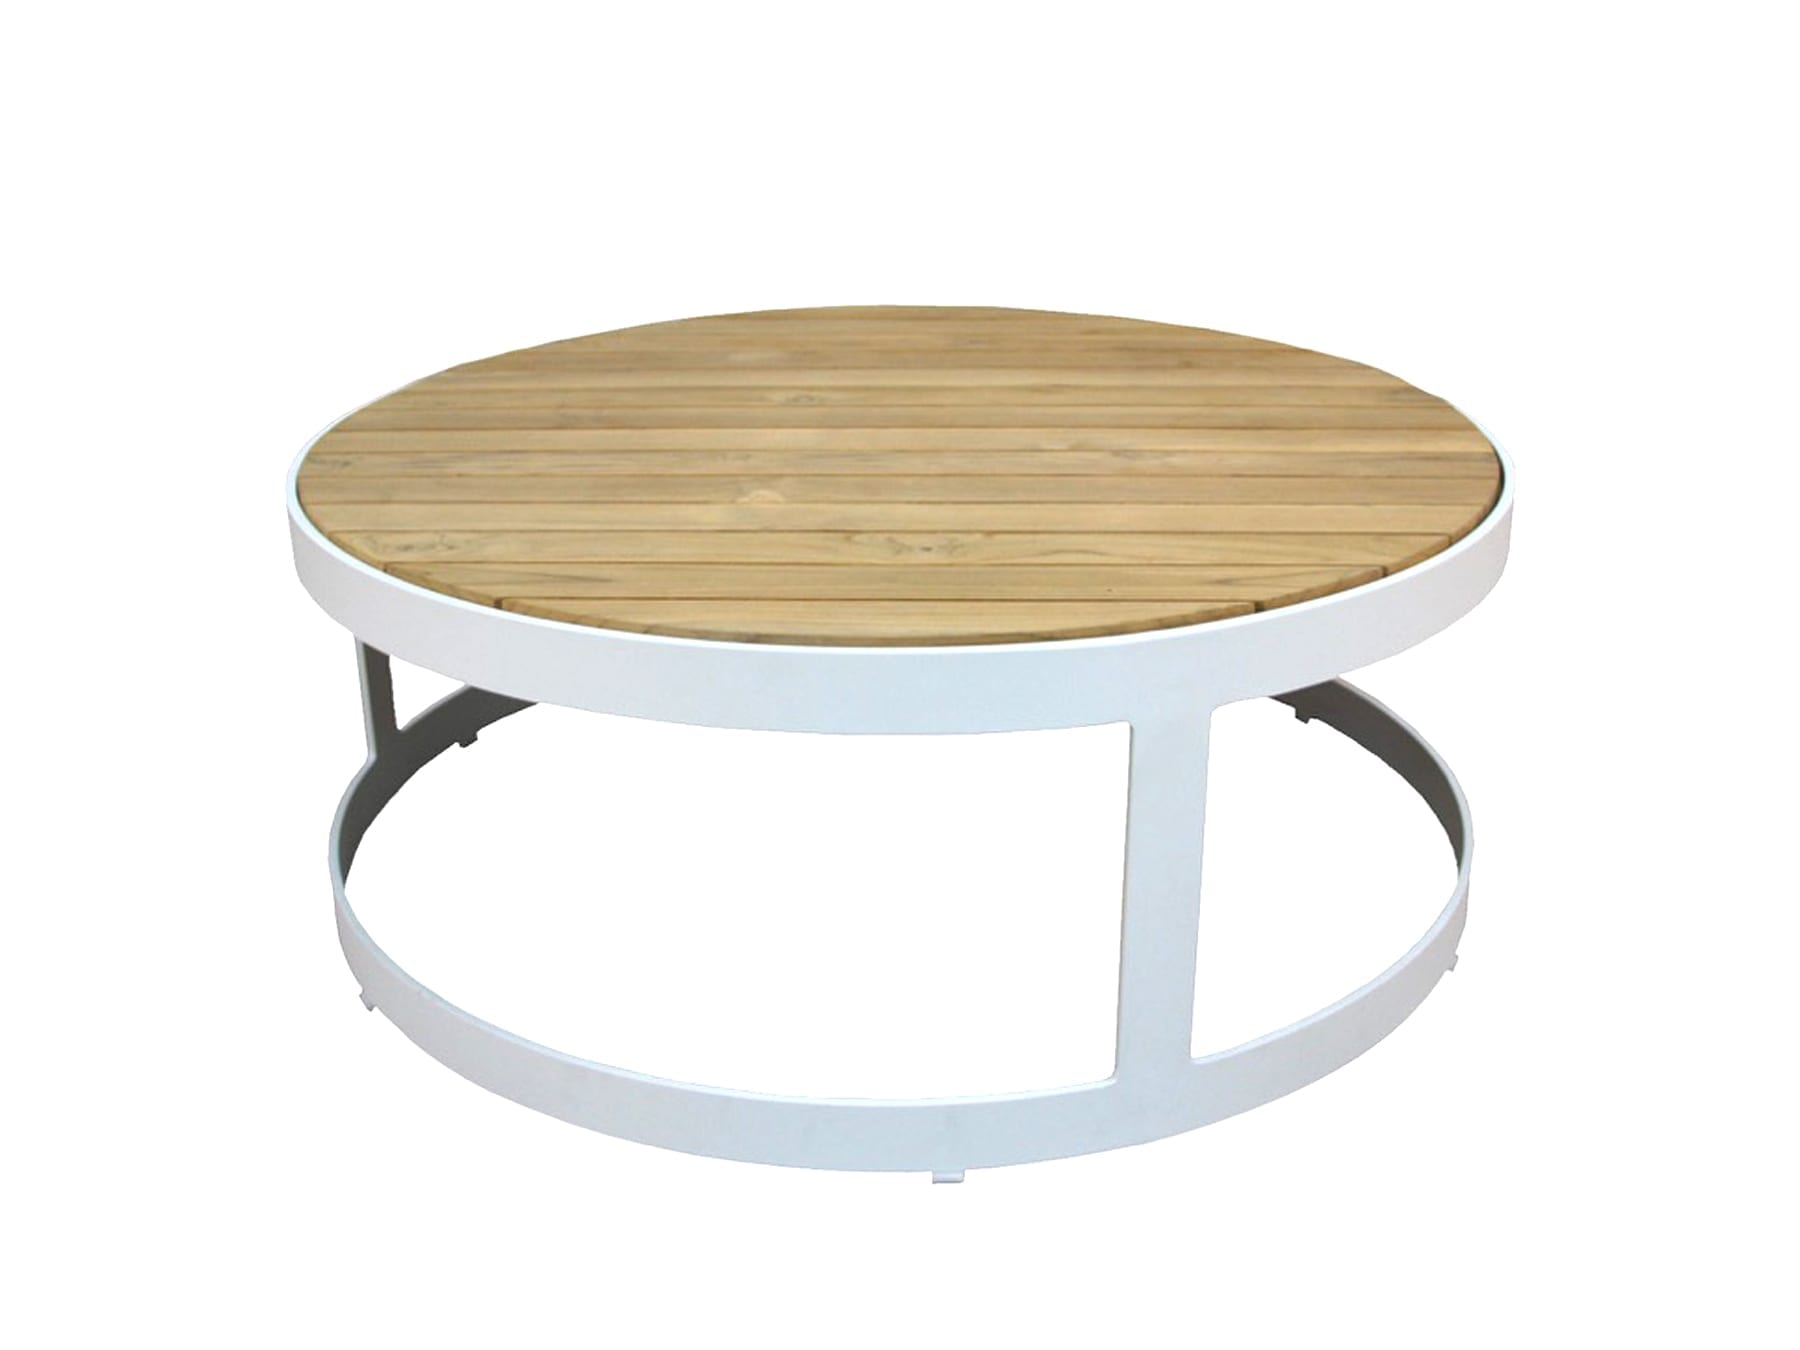 Jati Kebon Adagio Side Table